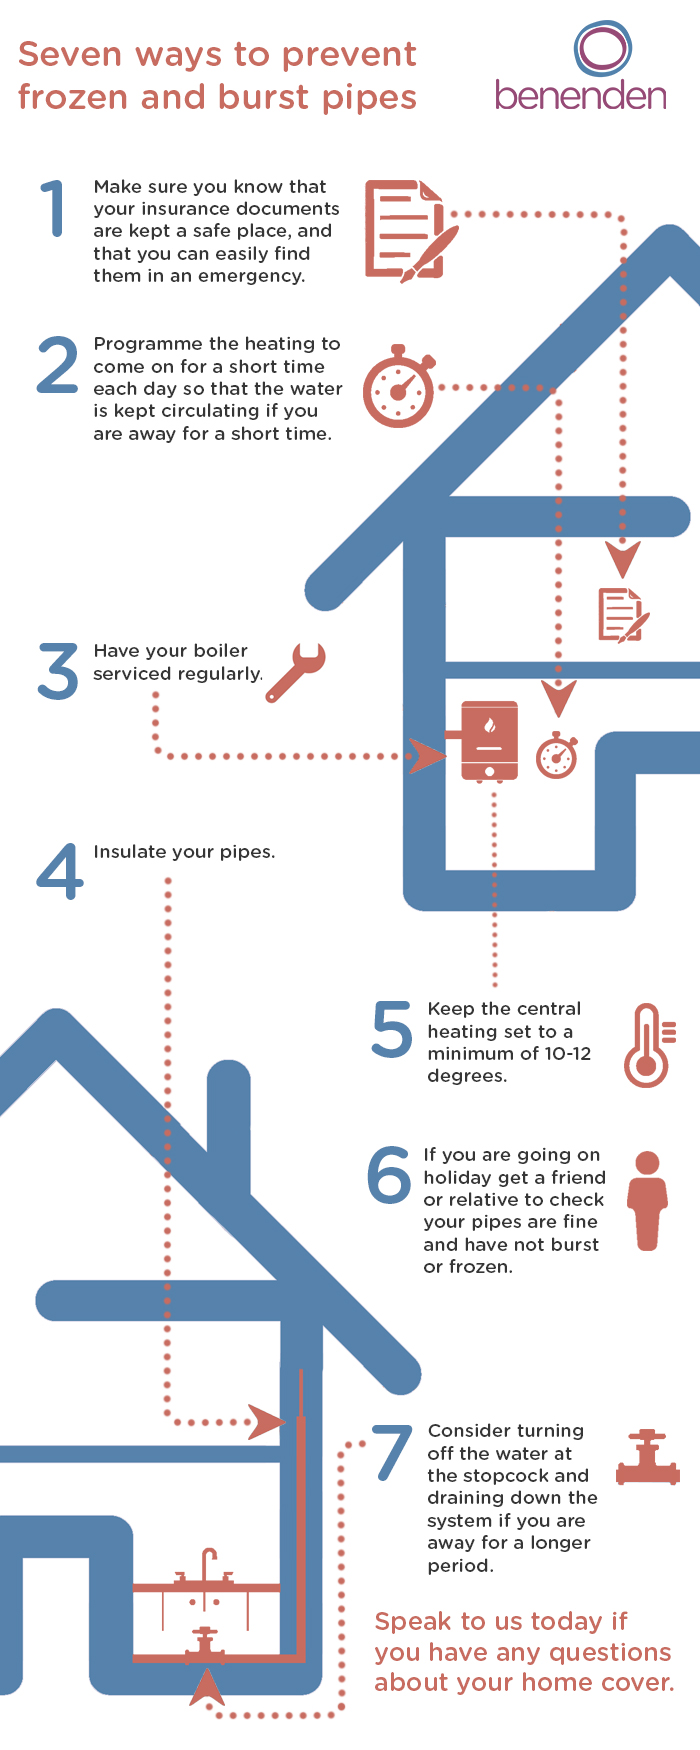 Seven ways to prevent frozen & burst pipes